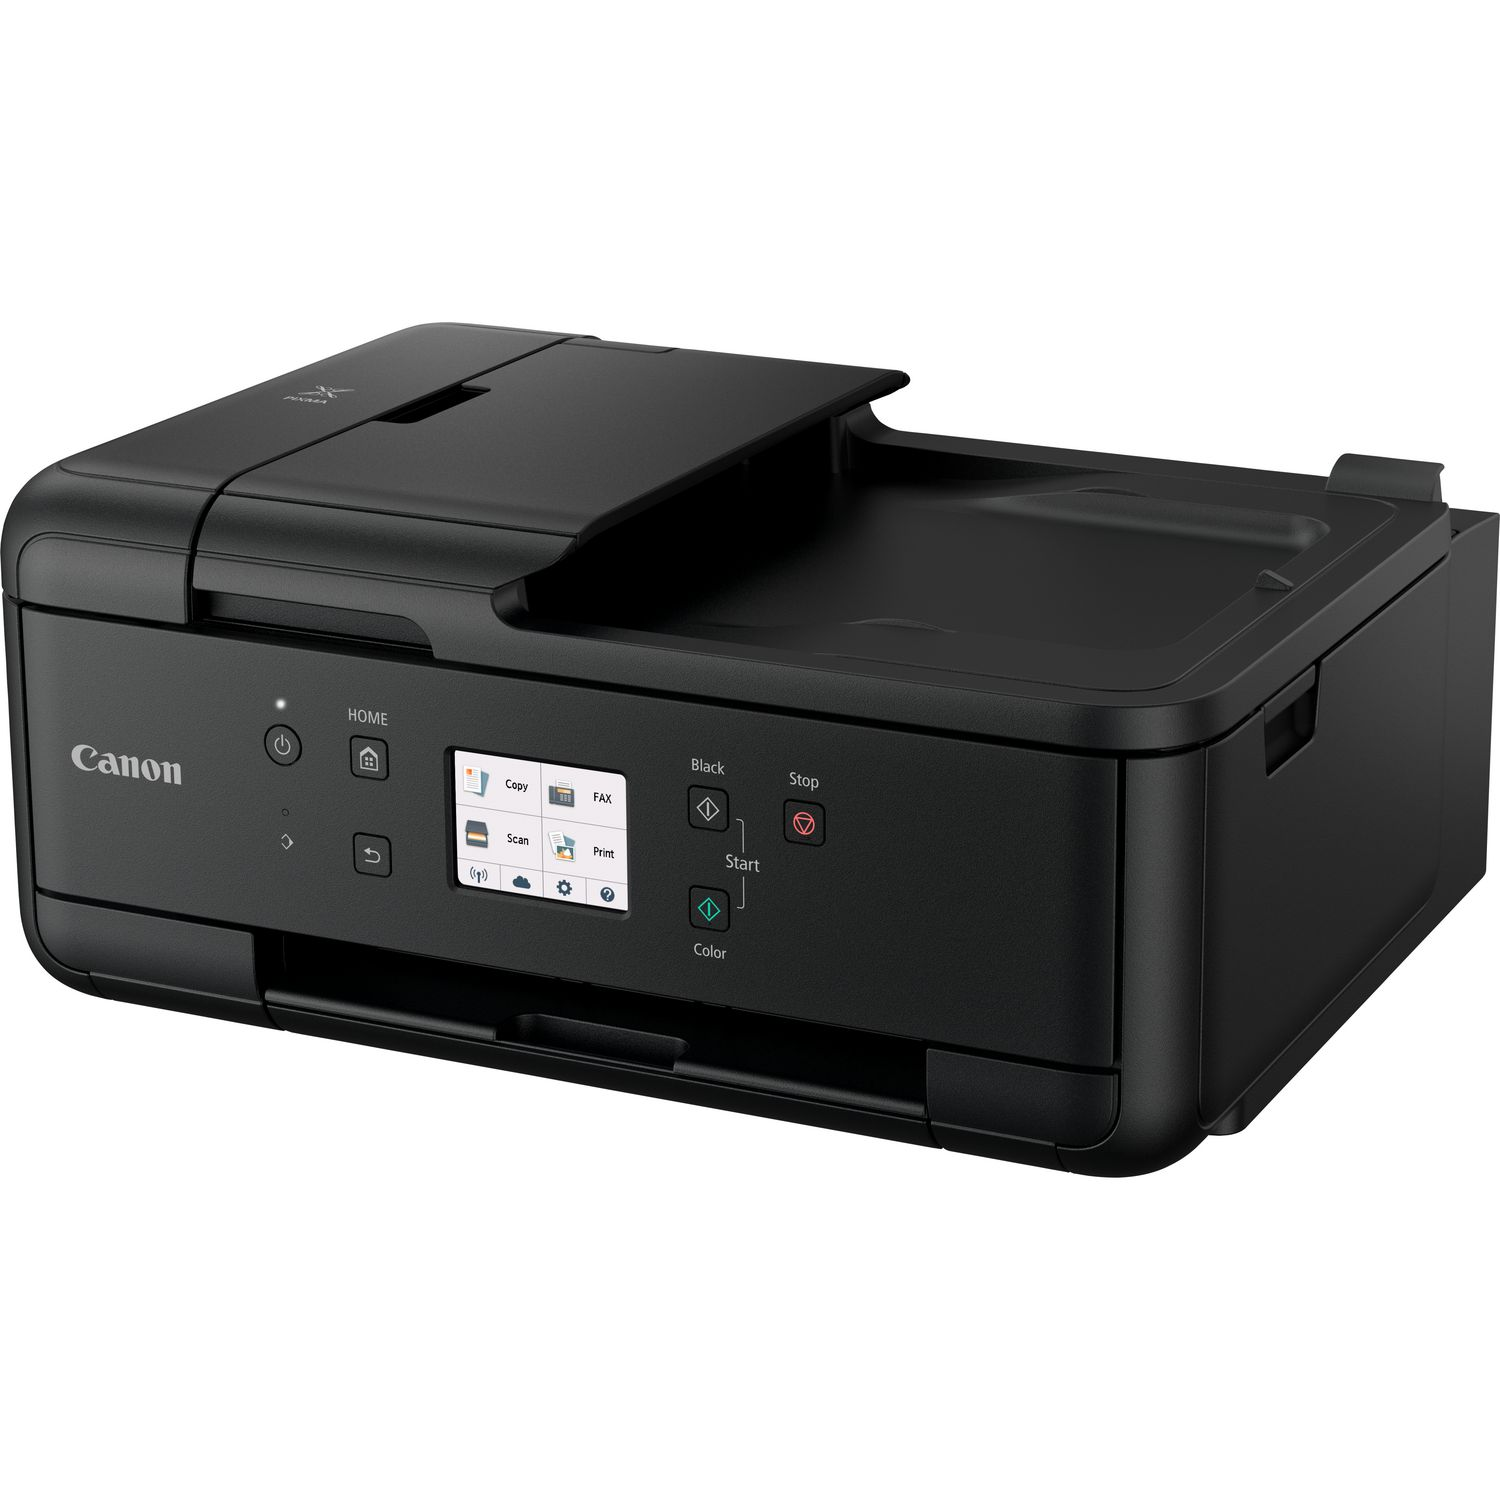 canon pixma tr7550 dans imprimantes wifi canon france boutique. Black Bedroom Furniture Sets. Home Design Ideas